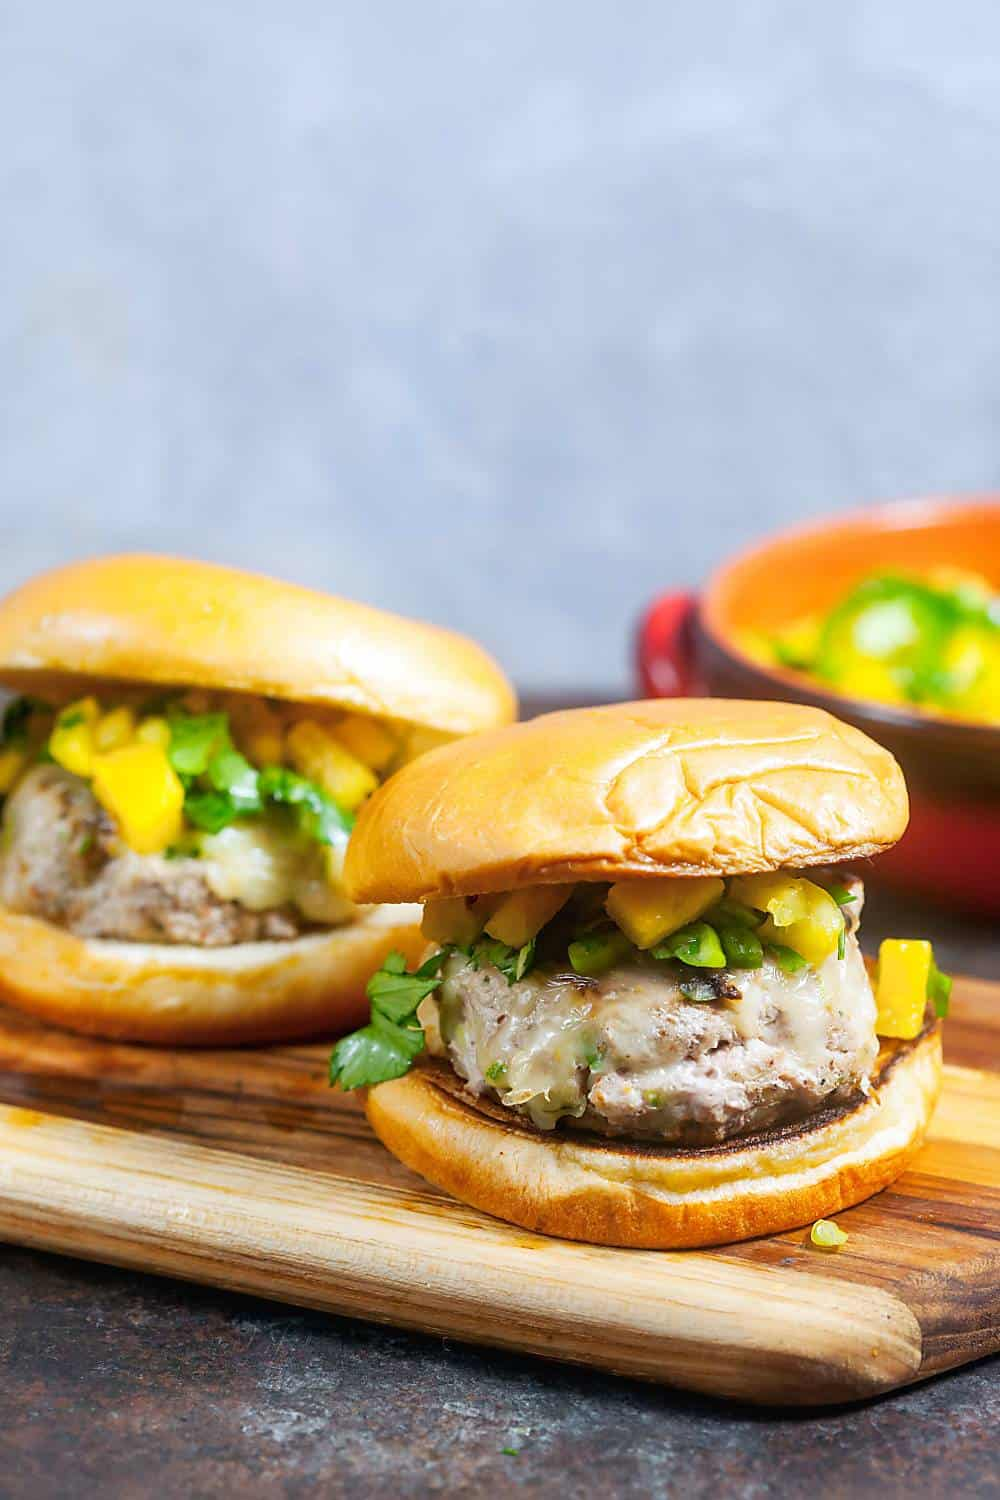 Jerk Turkey Burgers with Pineapple Salsa